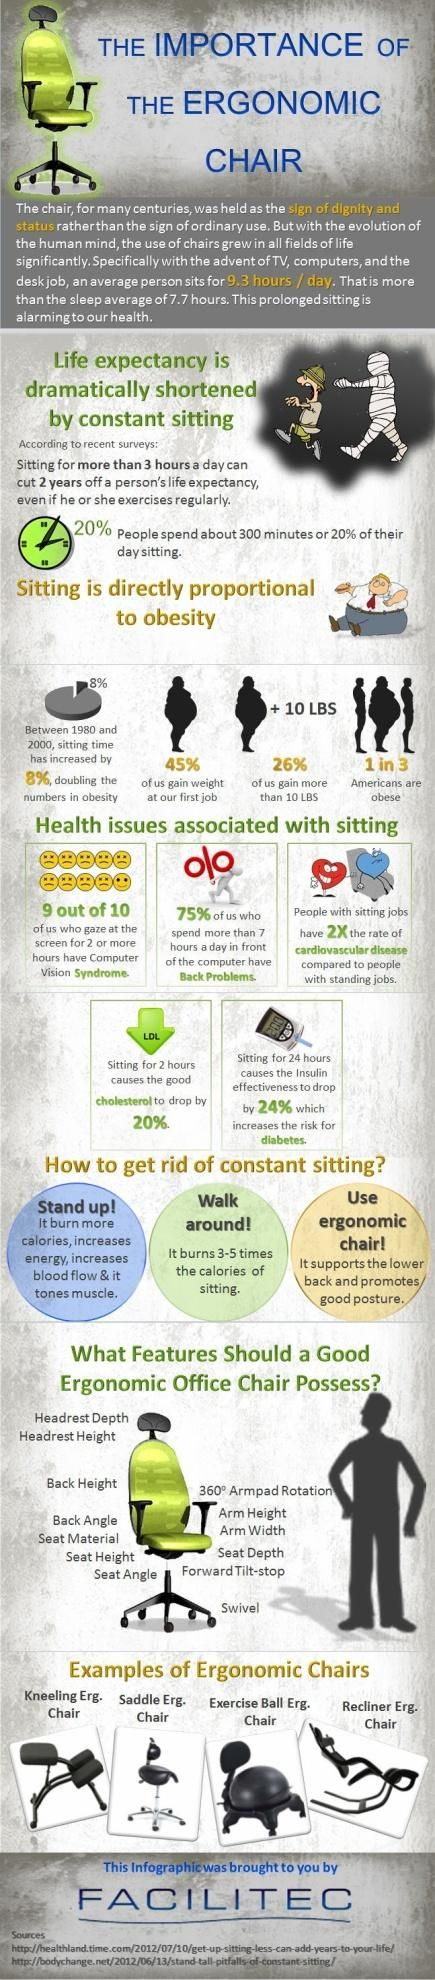 Description of workrite willow monitor arm willow is specifically - Check Out Our New Infographic On Ergonomic Chairs That We Did For Our Client Facilitec